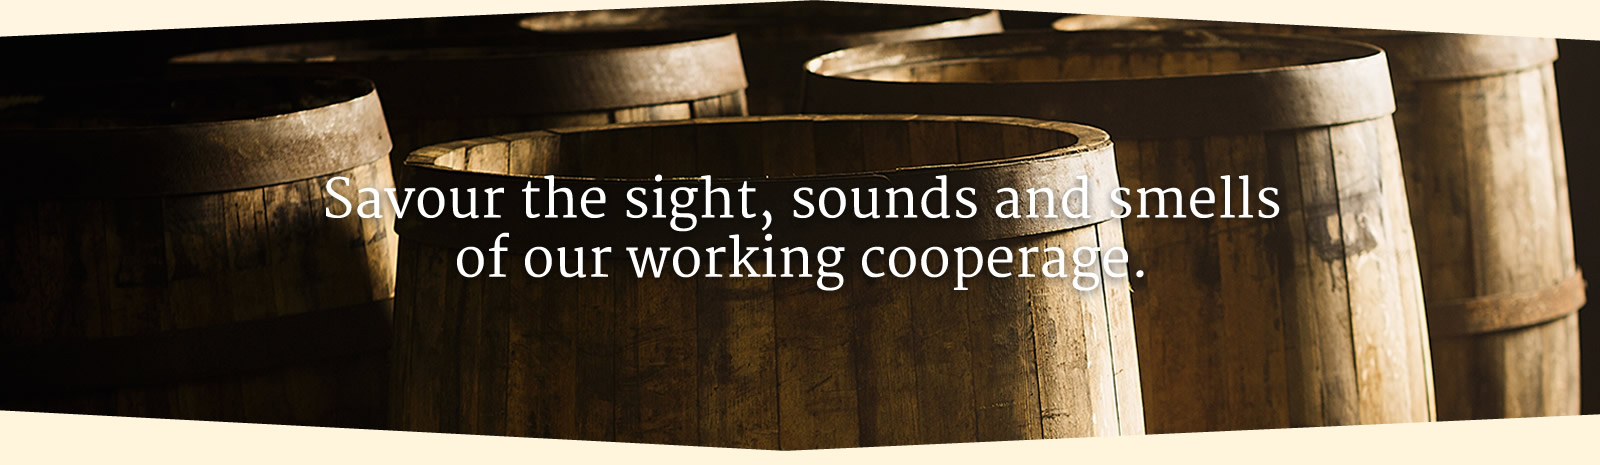 Savour the sights, sounds and smells of our working cooperage.